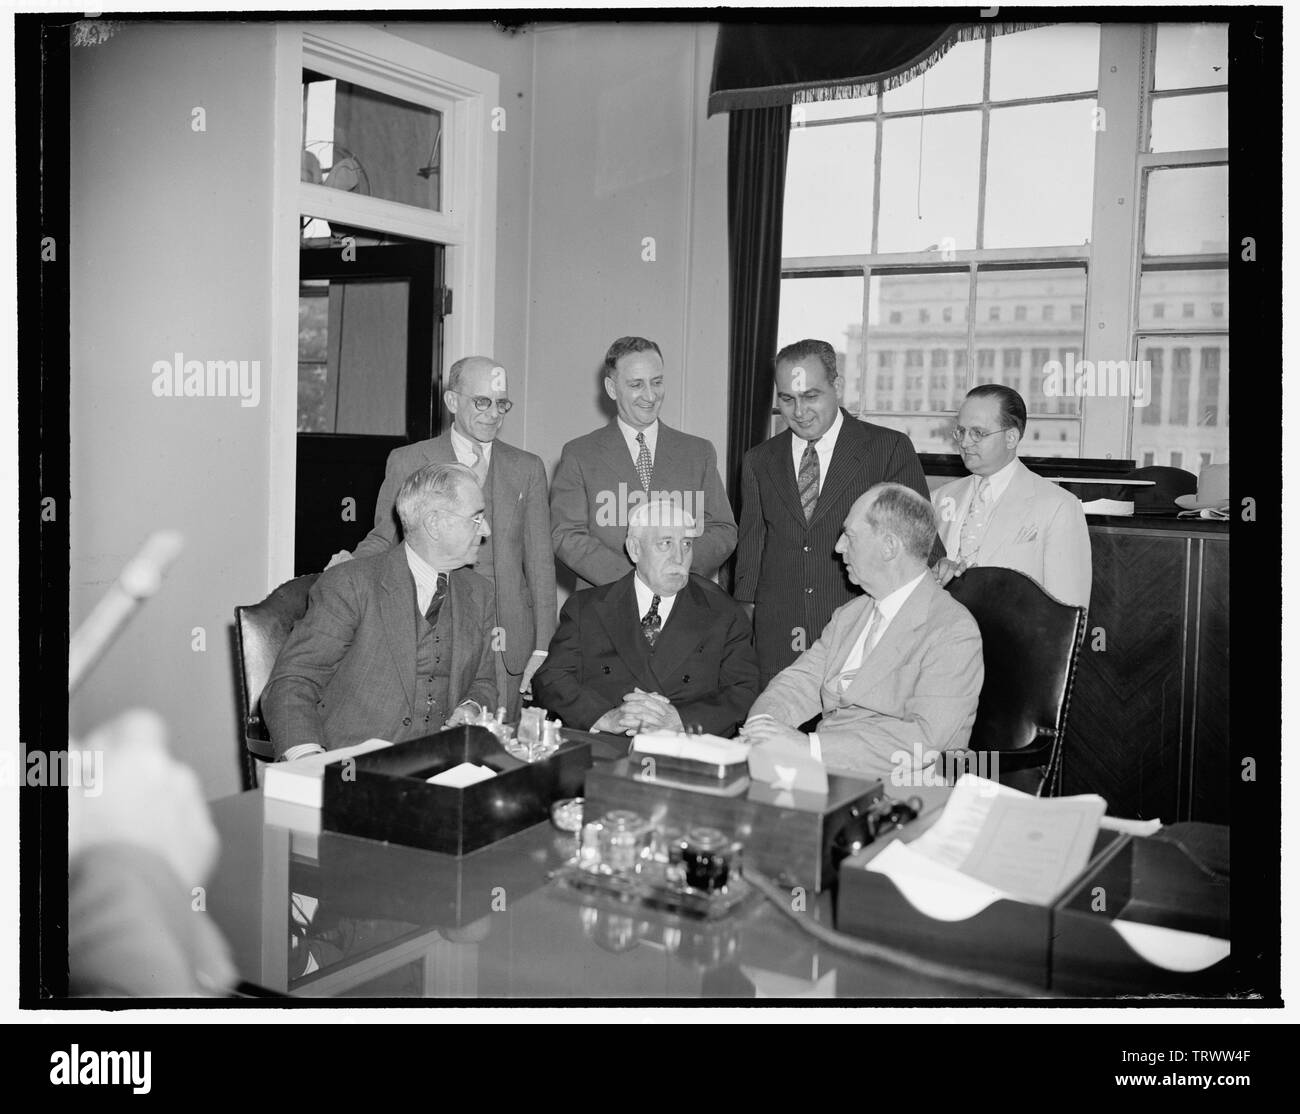 Admiral Leahy confers with Puerto Rican officials about new post as Governor. Washington, D.C., June 14. Admiral William D. Leahy, wh Stock Photo